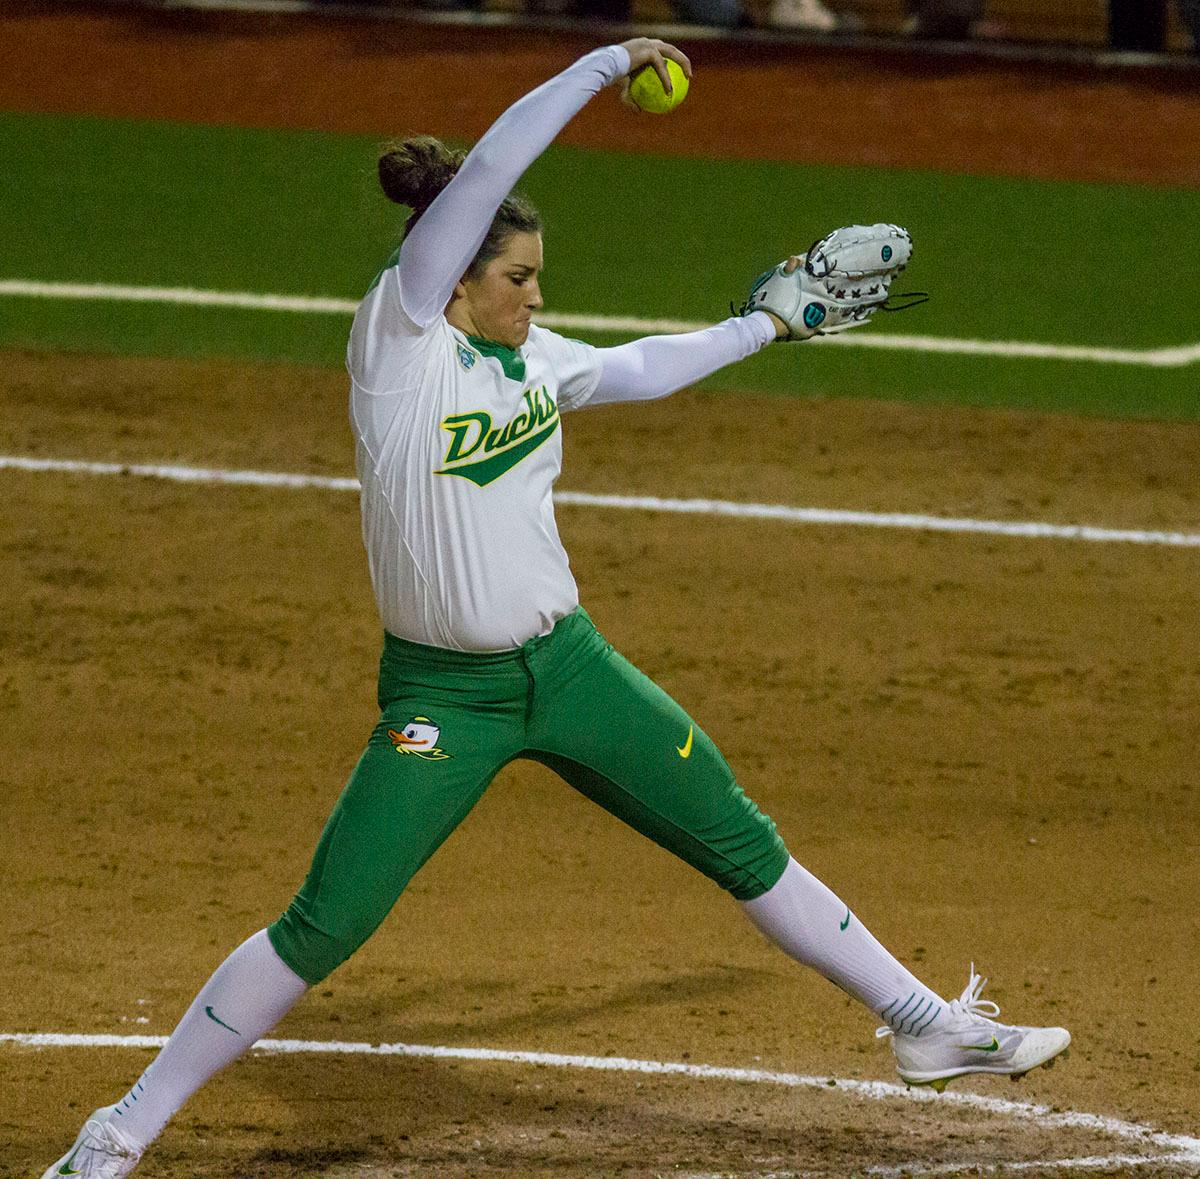 Ducks pitcher Maggie Balint (#25) winds up. The No. 3 Oregon Ducks defeated the University of Illinois Chicago Flames 13-0 with the run-rule on Saturday night at Jane Sanders Stadium. The Ducks scored in every inning and then scored nine runs at the bottom of the fourth. The Oregon Ducks are now 22-0 in NCAA regional games. The Oregon Ducks play Wisconsin next on Saturday, May 20 at 2pm at Jane Sanders Stadium. Photo by Aaron Alter, Oregon News Lab